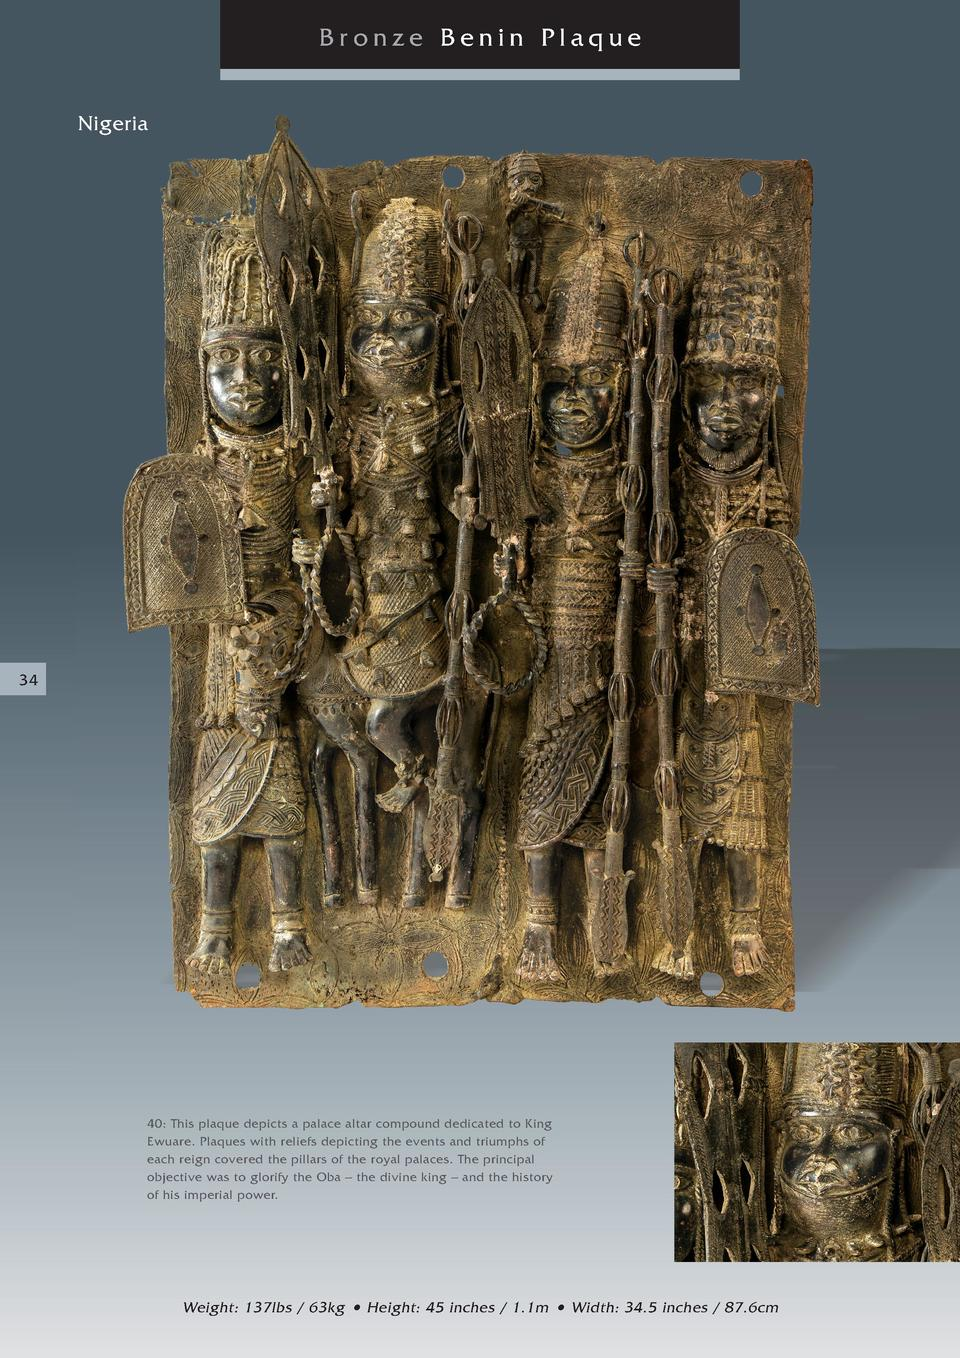 Bronze Benin Plaque Nigeria  34  40  This plaque depicts a palace altar compound dedicated to King Ewuare. Plaques with re...